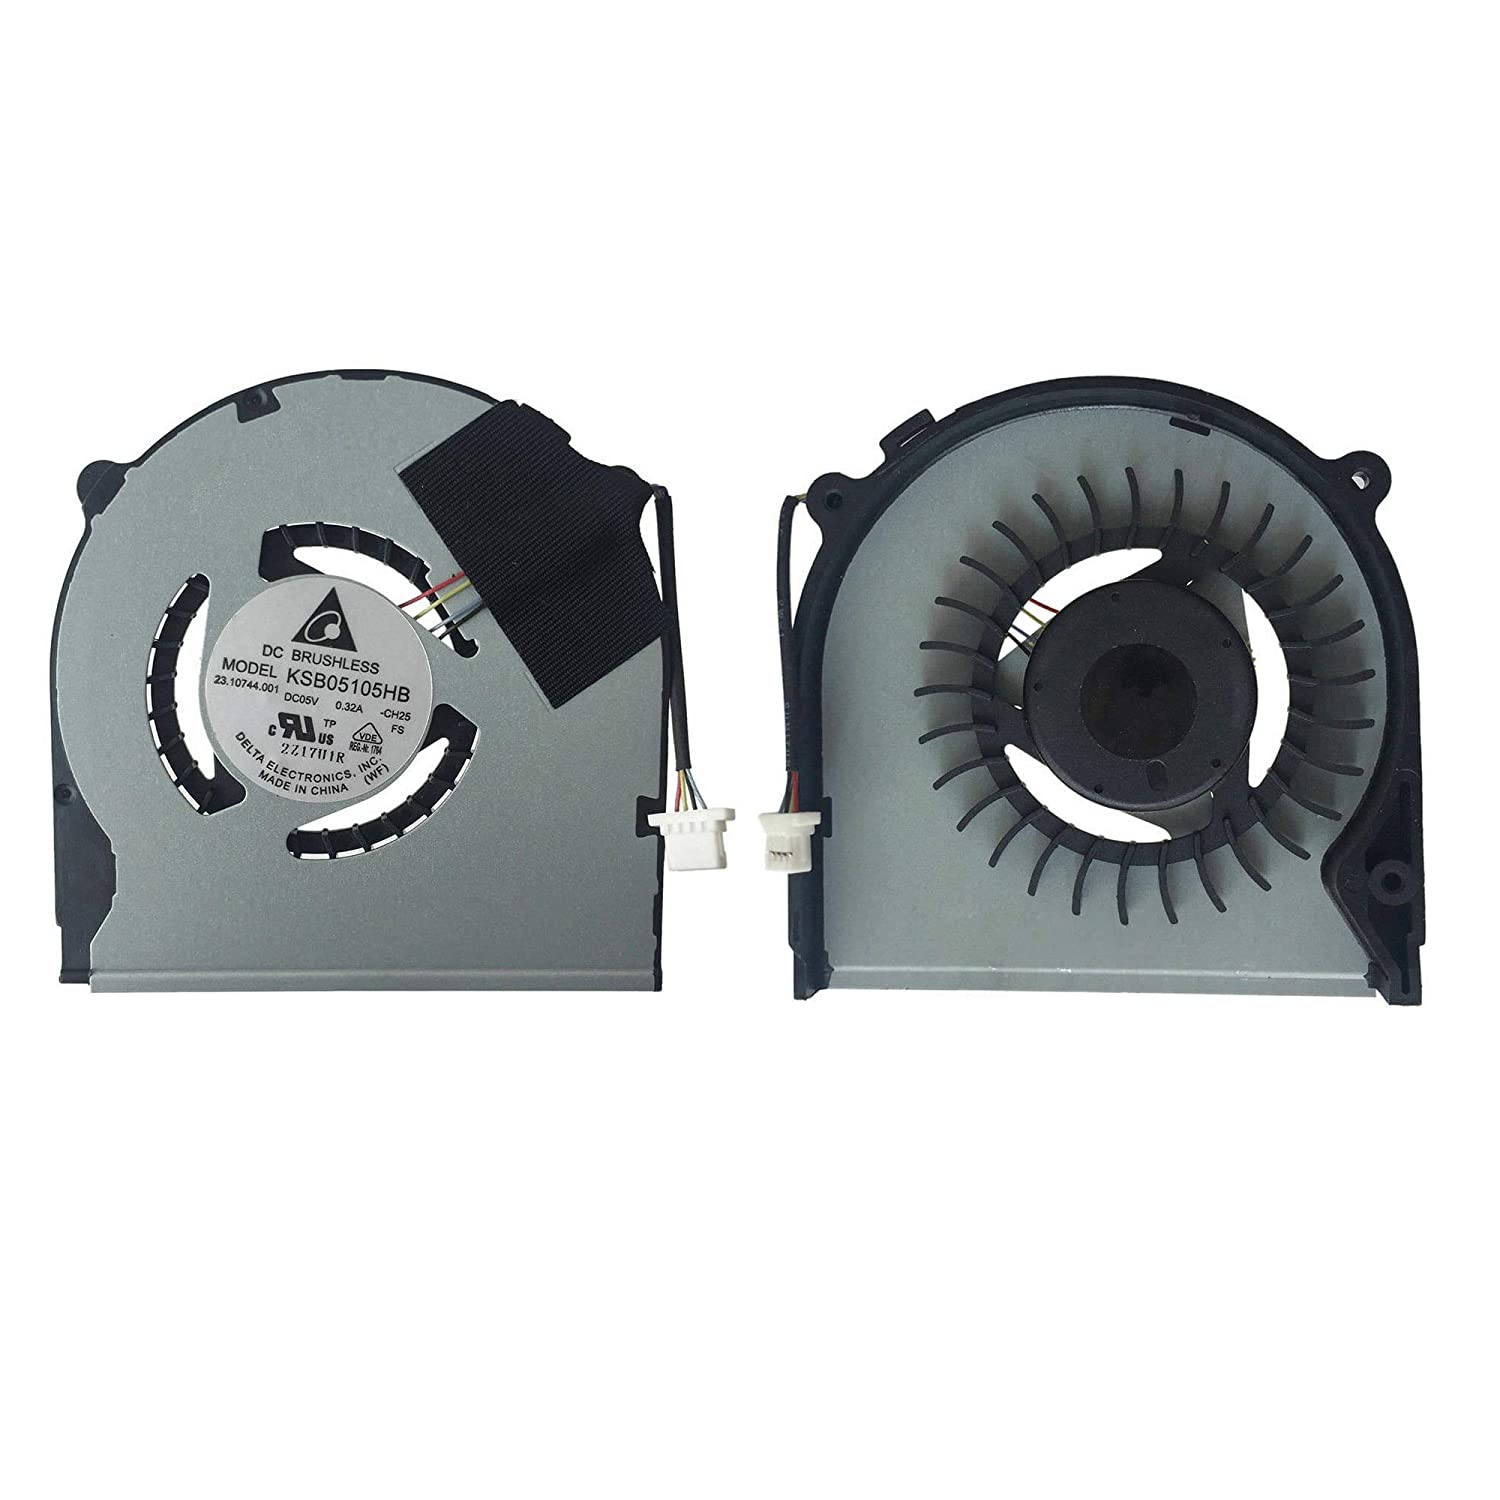 Todiys CPU Cooling Fan for Sony Vaio SVT13 SVT131A SVT14 SVT141A SVT1411 SVT1412 SVT15 SVT151A SVT1511A Series SVT131A11 SVT13122CXS SVT1411BPXS SVT131190X SVT151A11L SVT15117CXS KSB05105HB-CH25